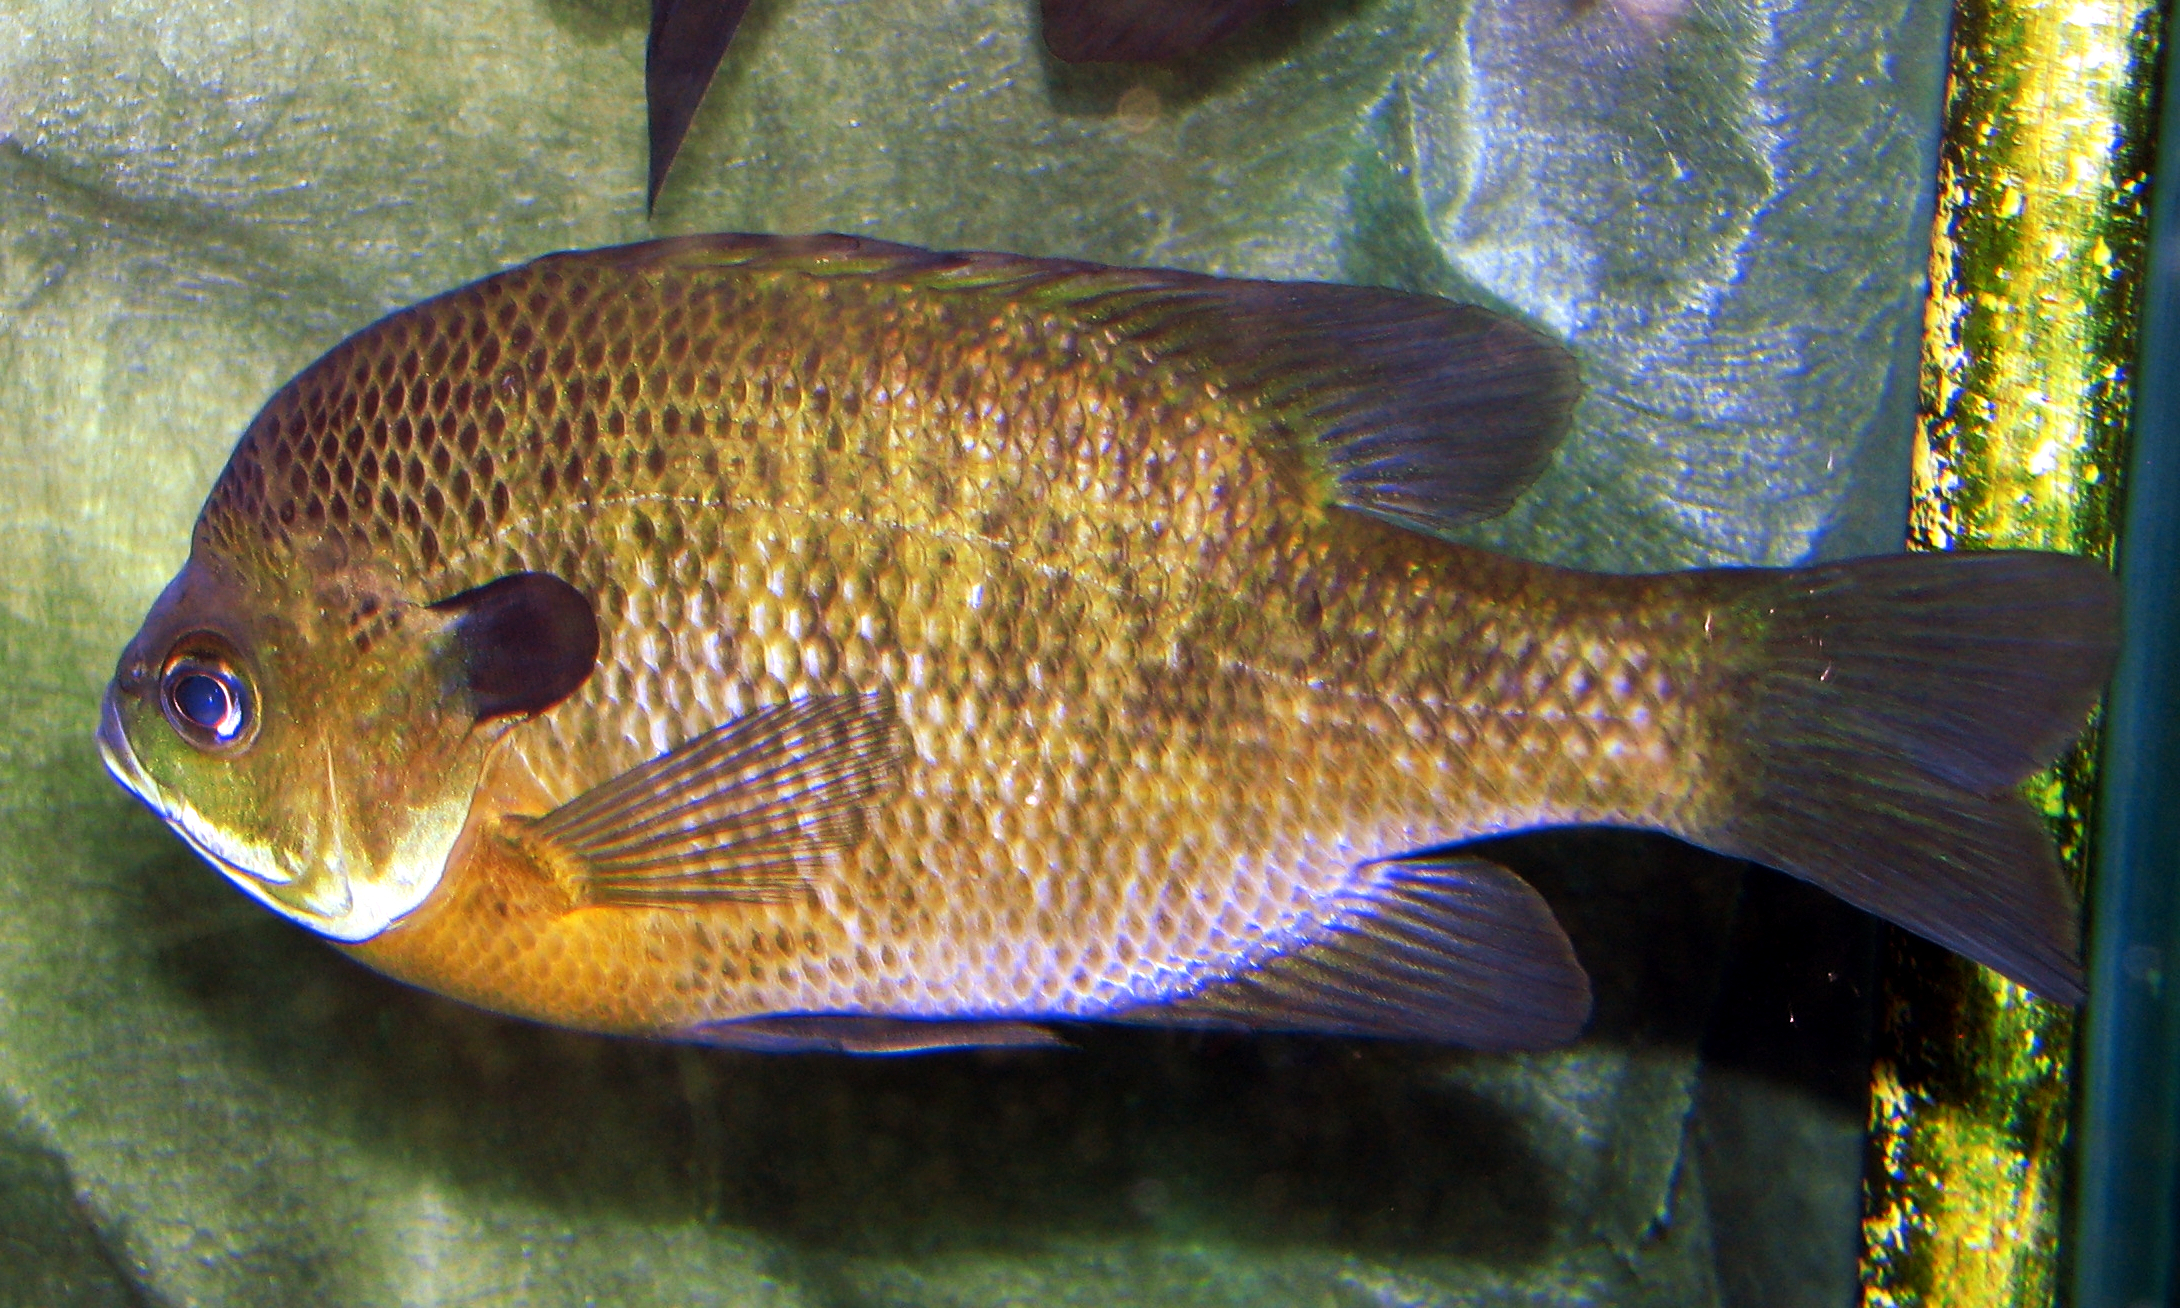 https://upload.wikimedia.org/wikipedia/commons/d/d2/Bluegill_%28Lepomis_macrochirus%29.jpg